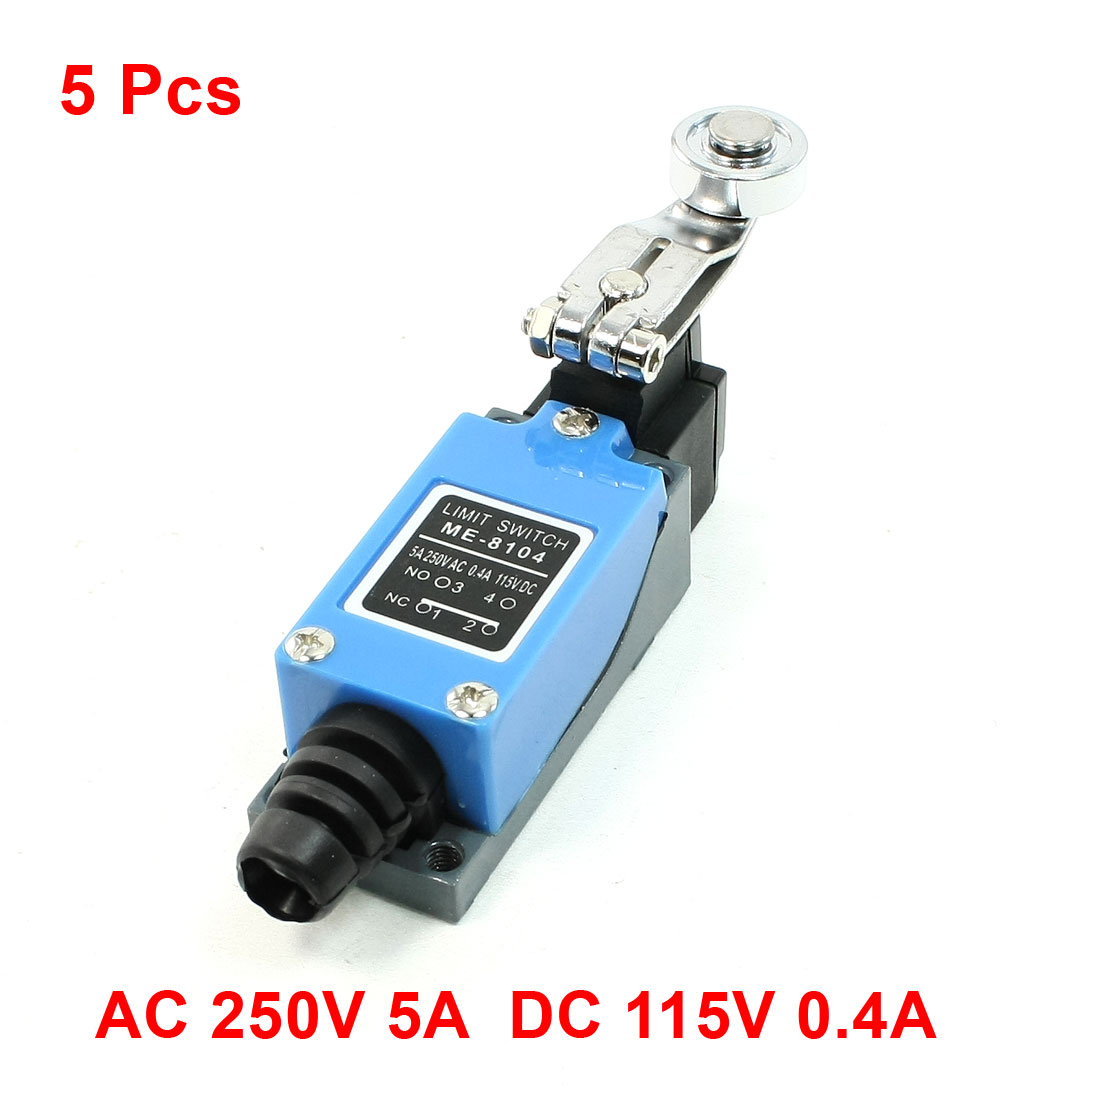 5 Pcs ME-8104 Rotary Metal Roller Arm Limit Switch for CNC Mill Plasma